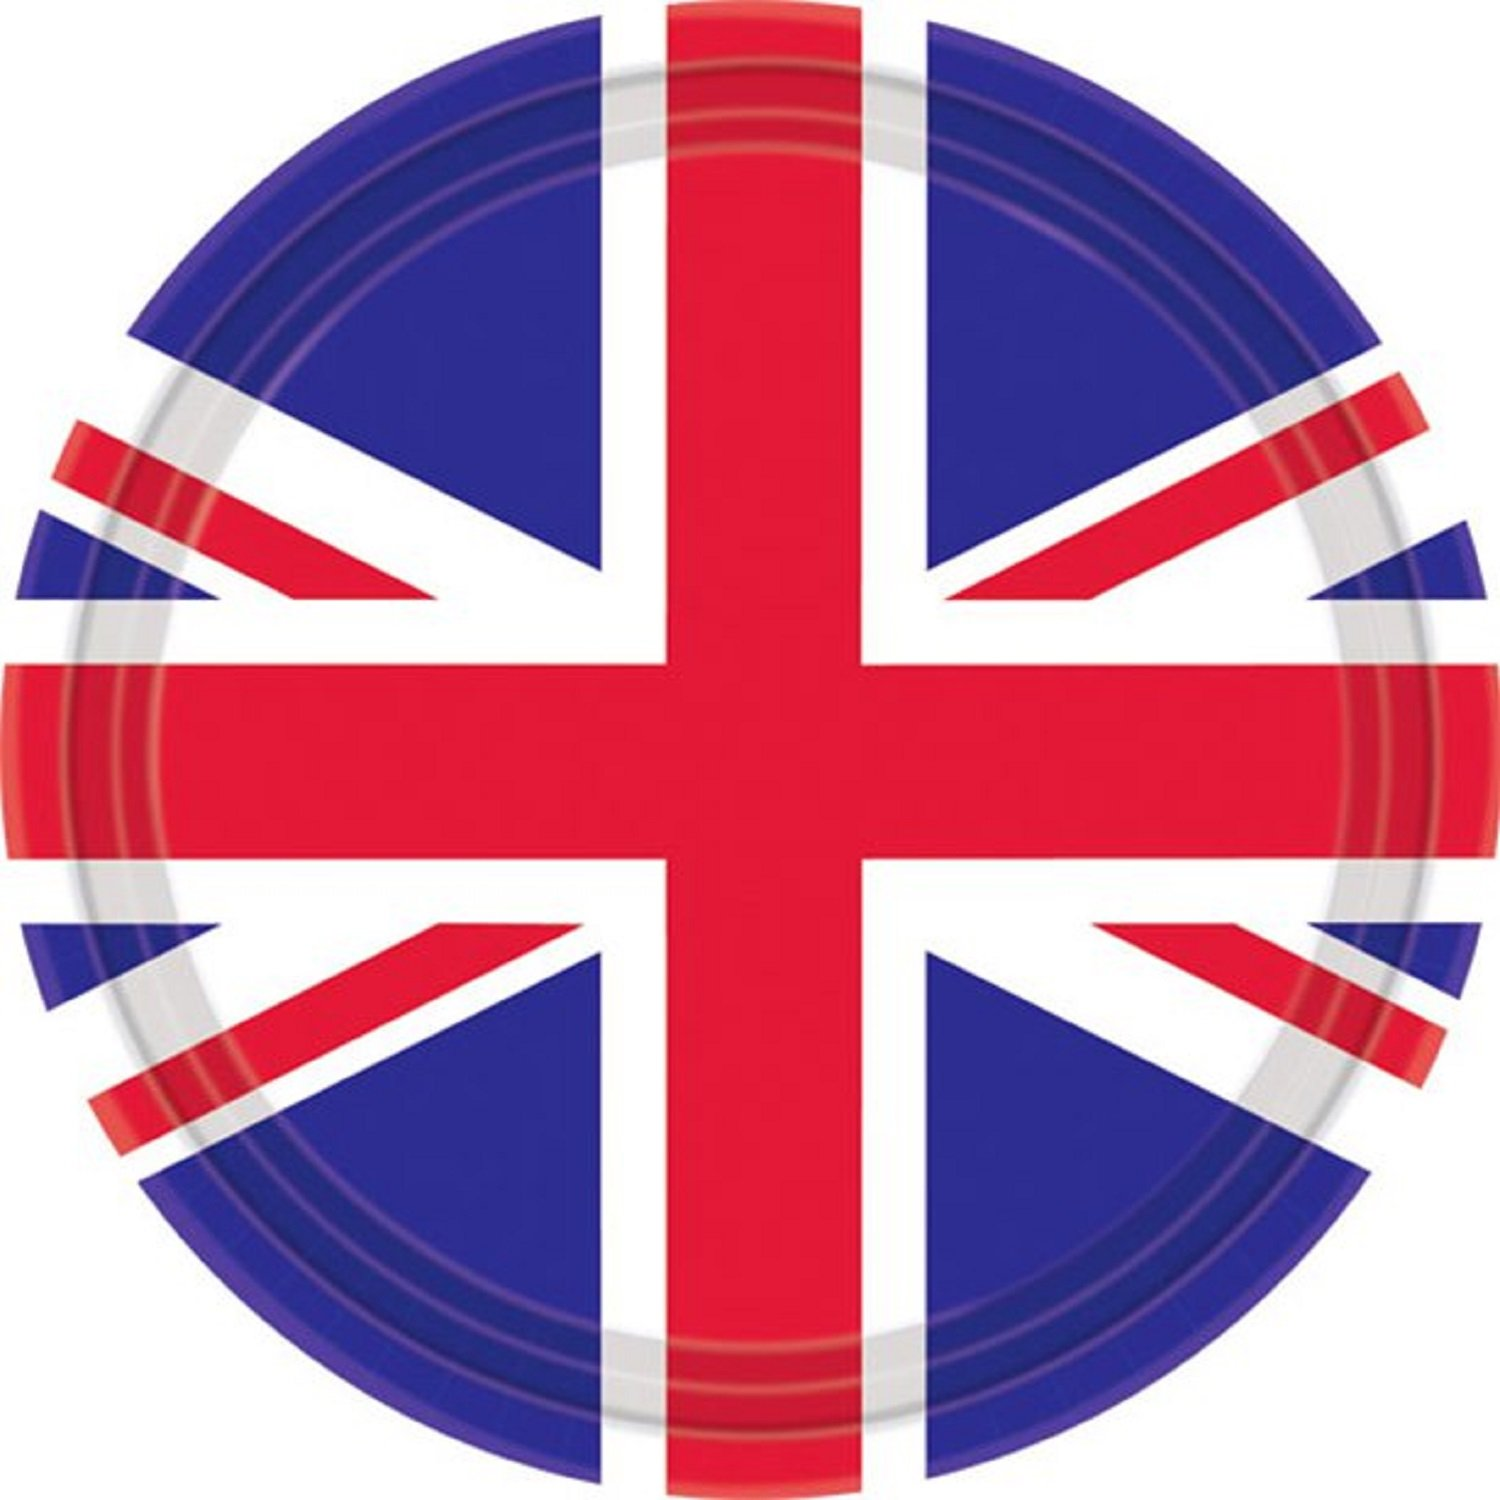 Fancy Me Great Britain Party Napkins Red White Blue Union Jack British Celebration Event Party Sports Royal Wedding Party Paper Tableware (Great Britain Napkins)